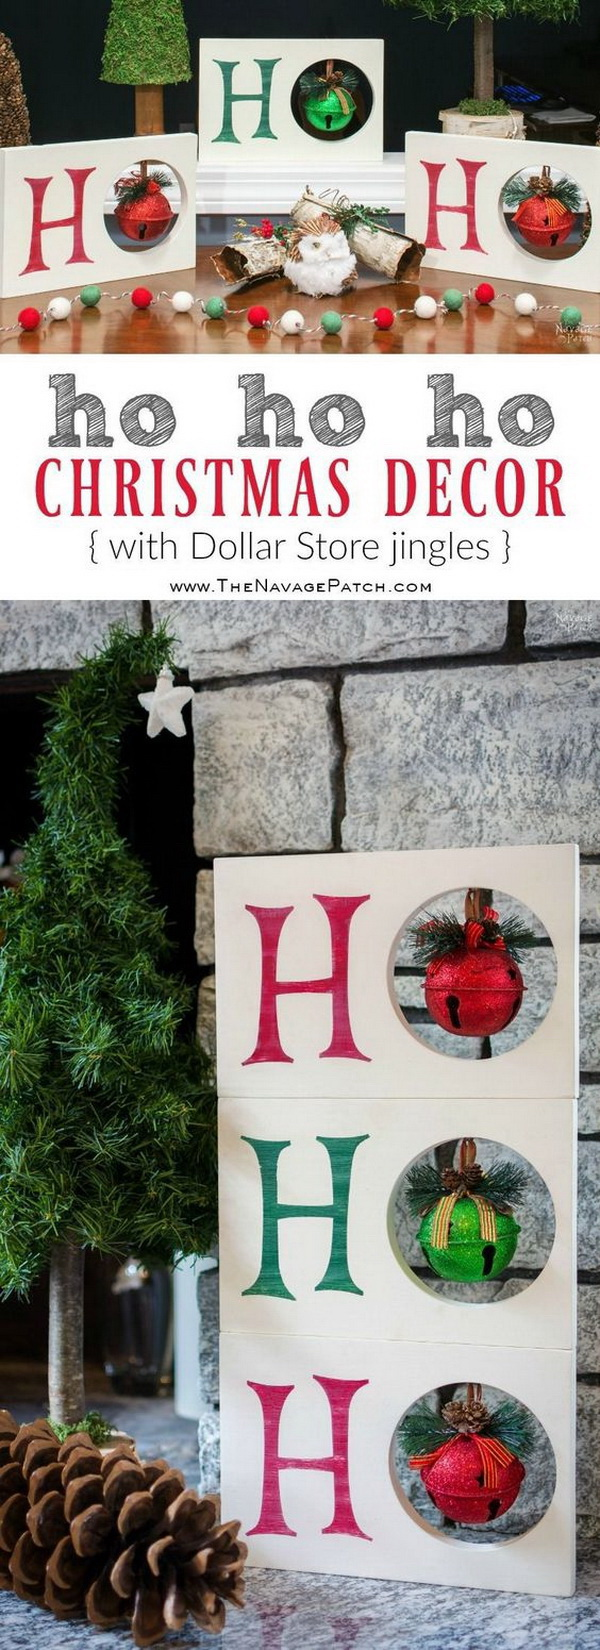 diy ho ho ho christmas decor - 99 Cent Store Christmas Decorations